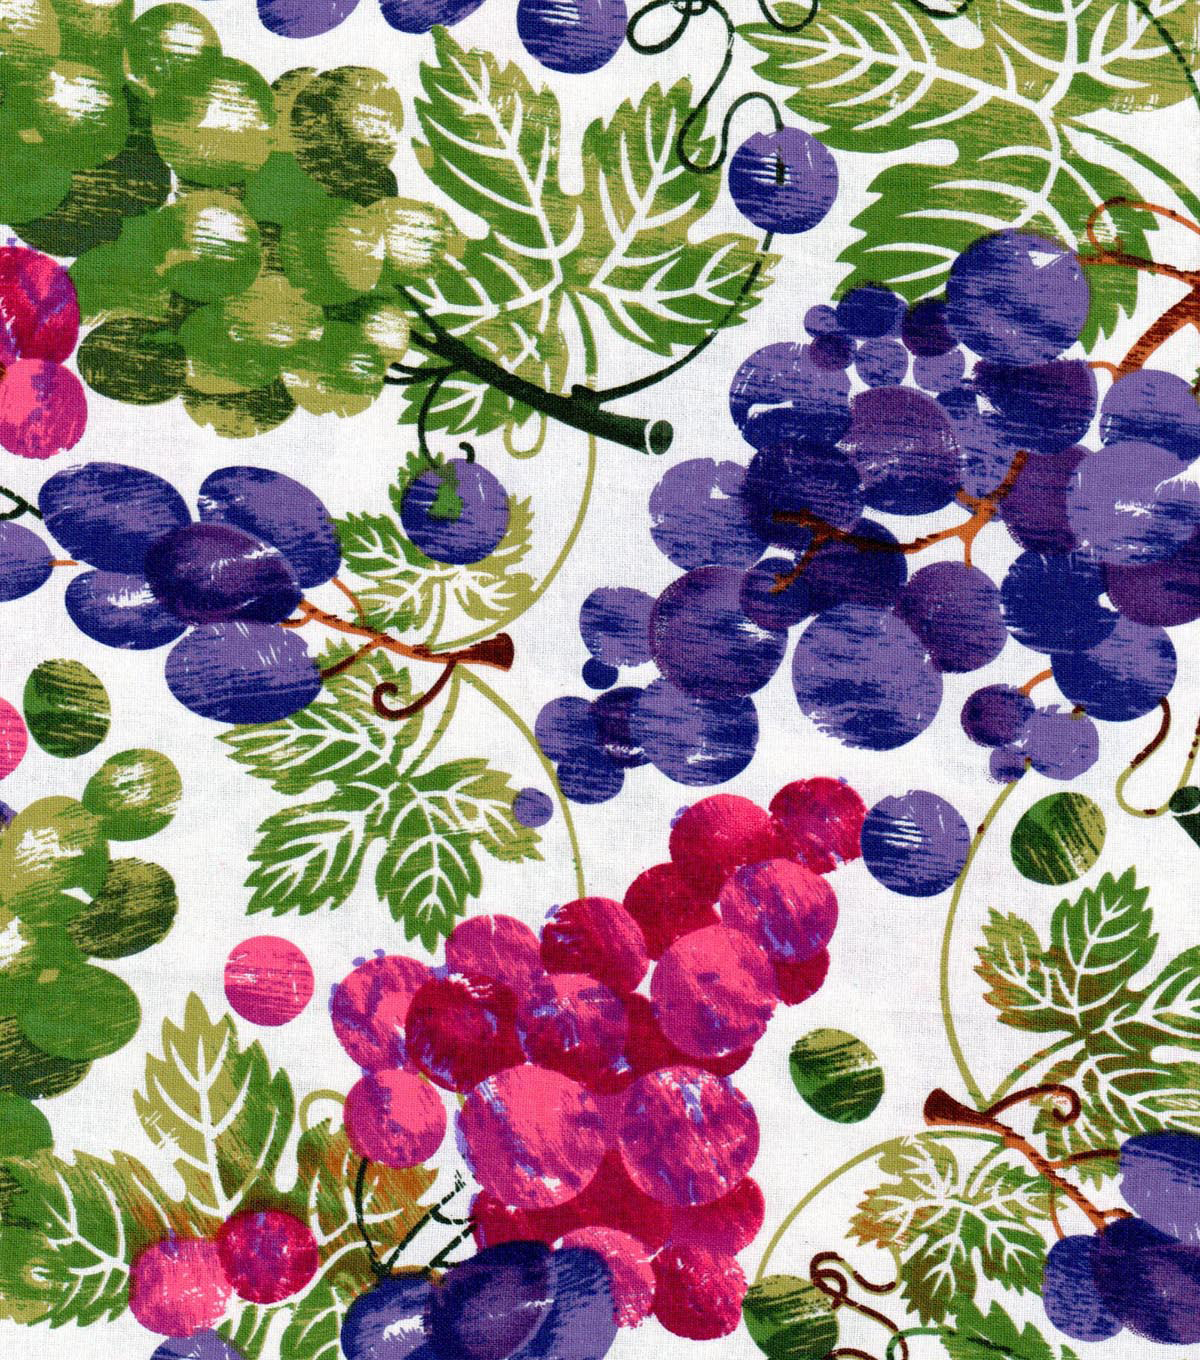 Vineyard Fabric - Multi Colored Grapes On Leaves